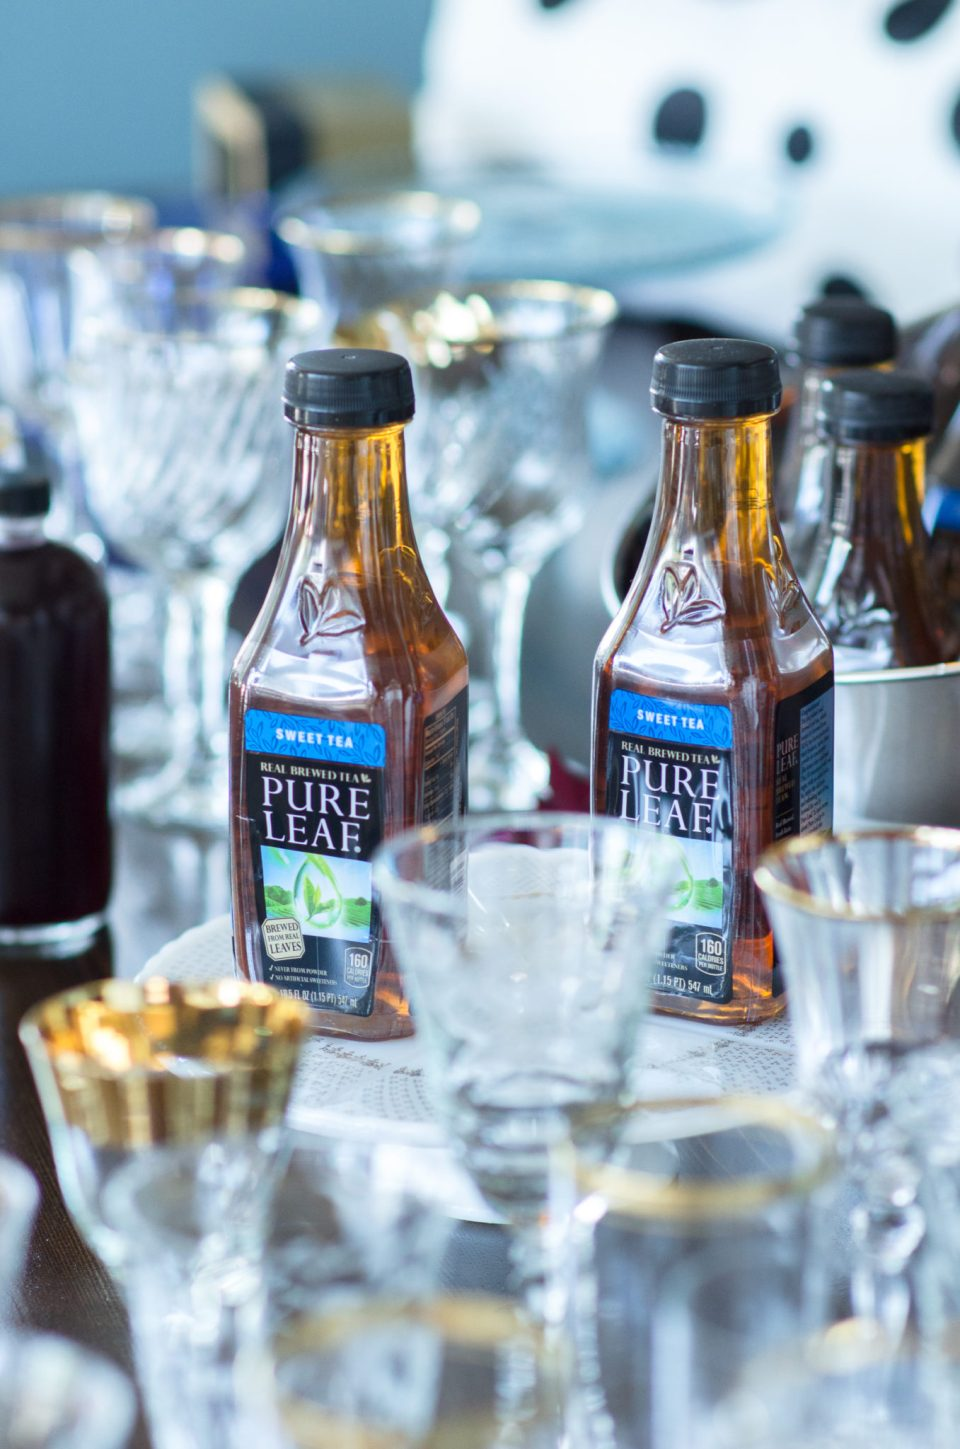 BlackSouthernBelle_things-18-1-960x1449 Hosting a Sweet Tea Party in Style - Powered by Pure Leaf Iced Tea